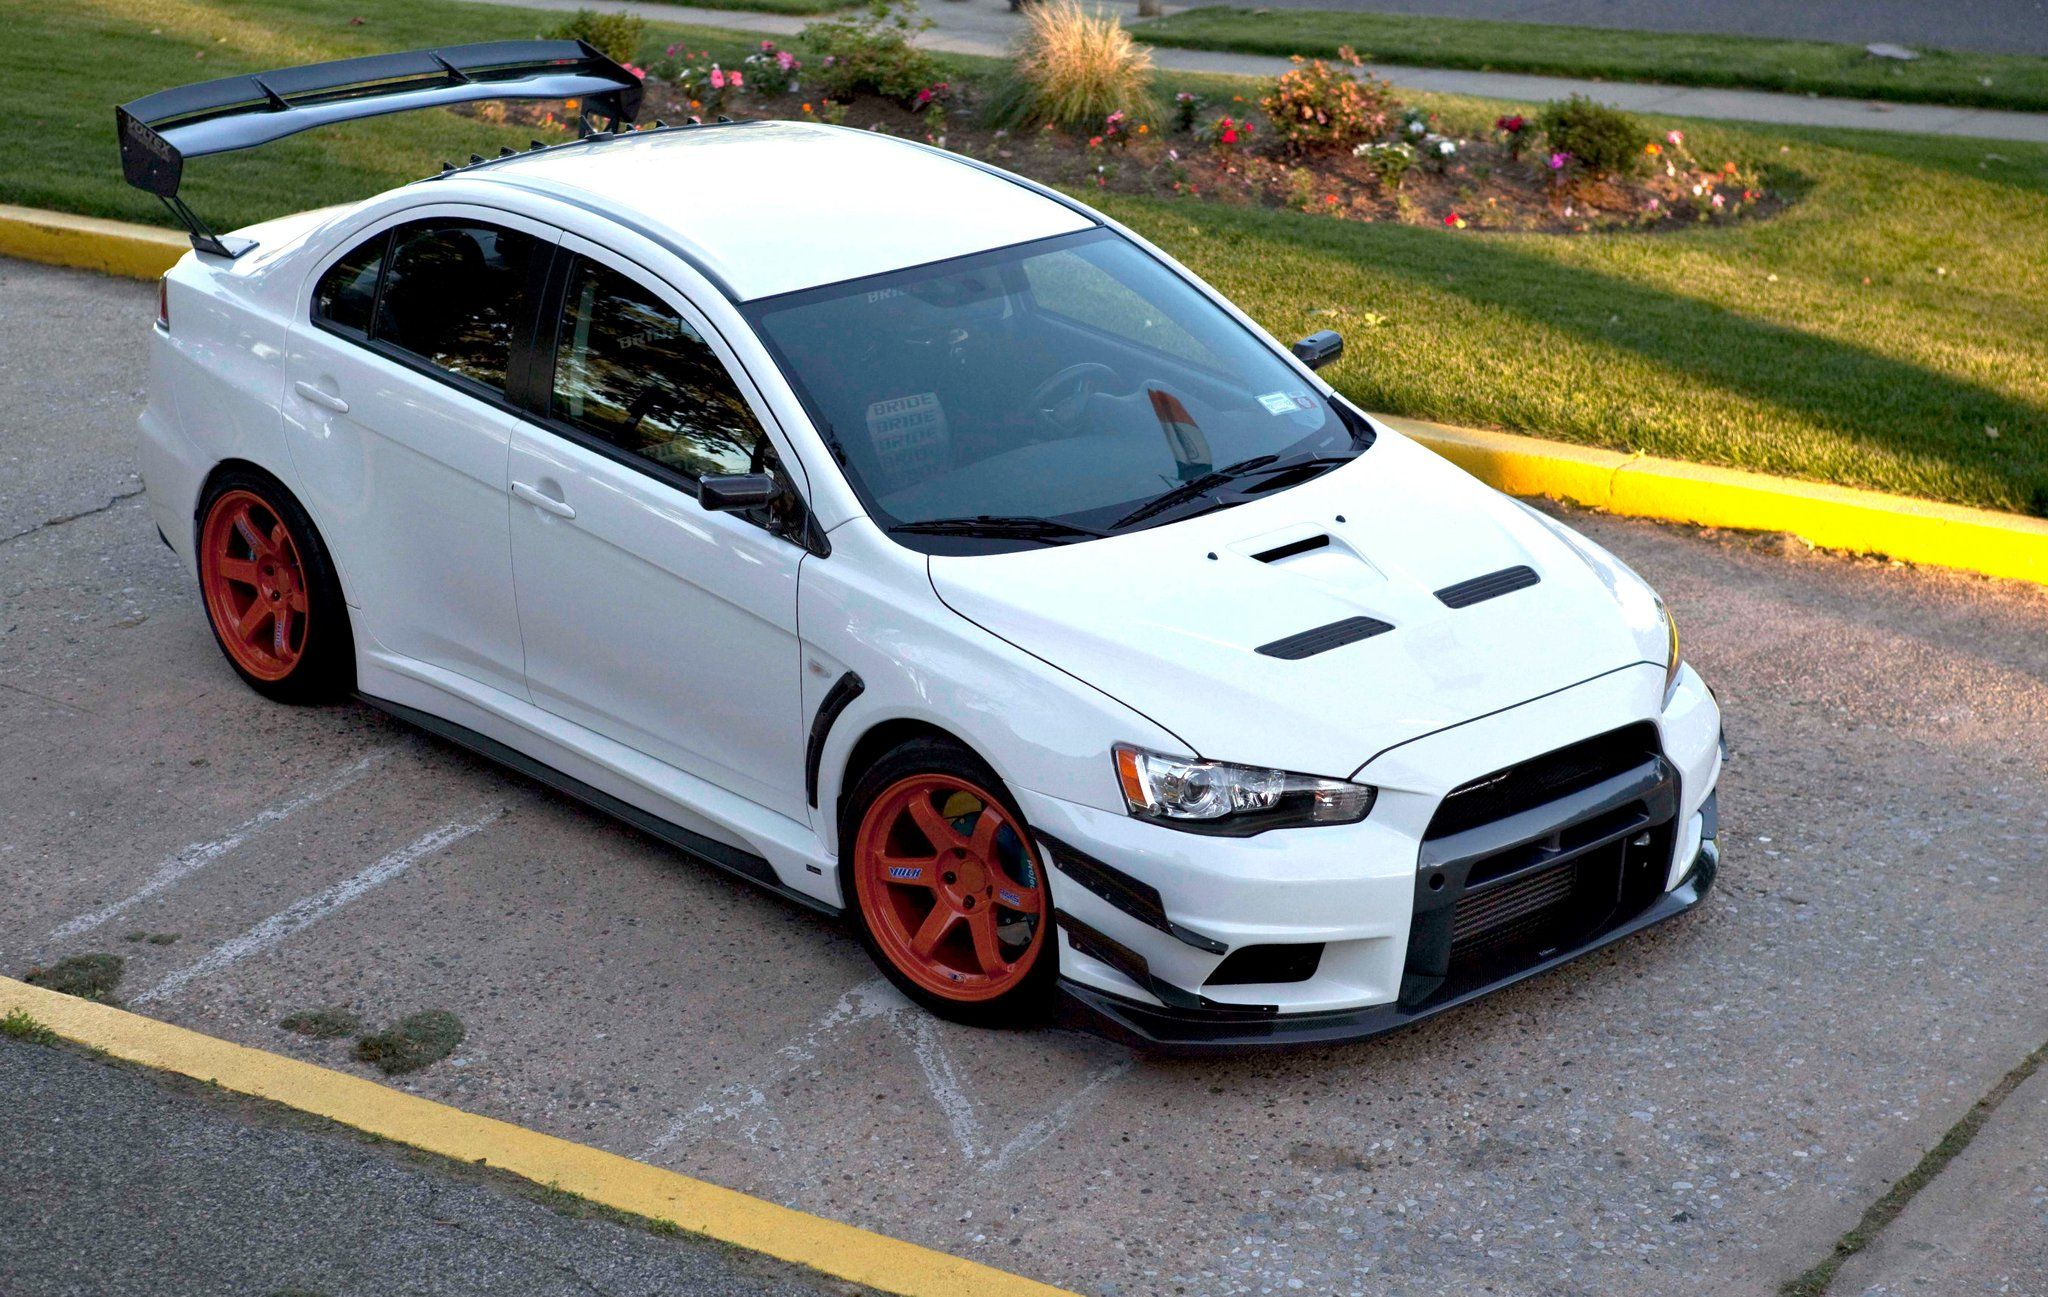 mitsubishi lancer evo 10 mitsubishi lancer evo 10 sport car white edit front side